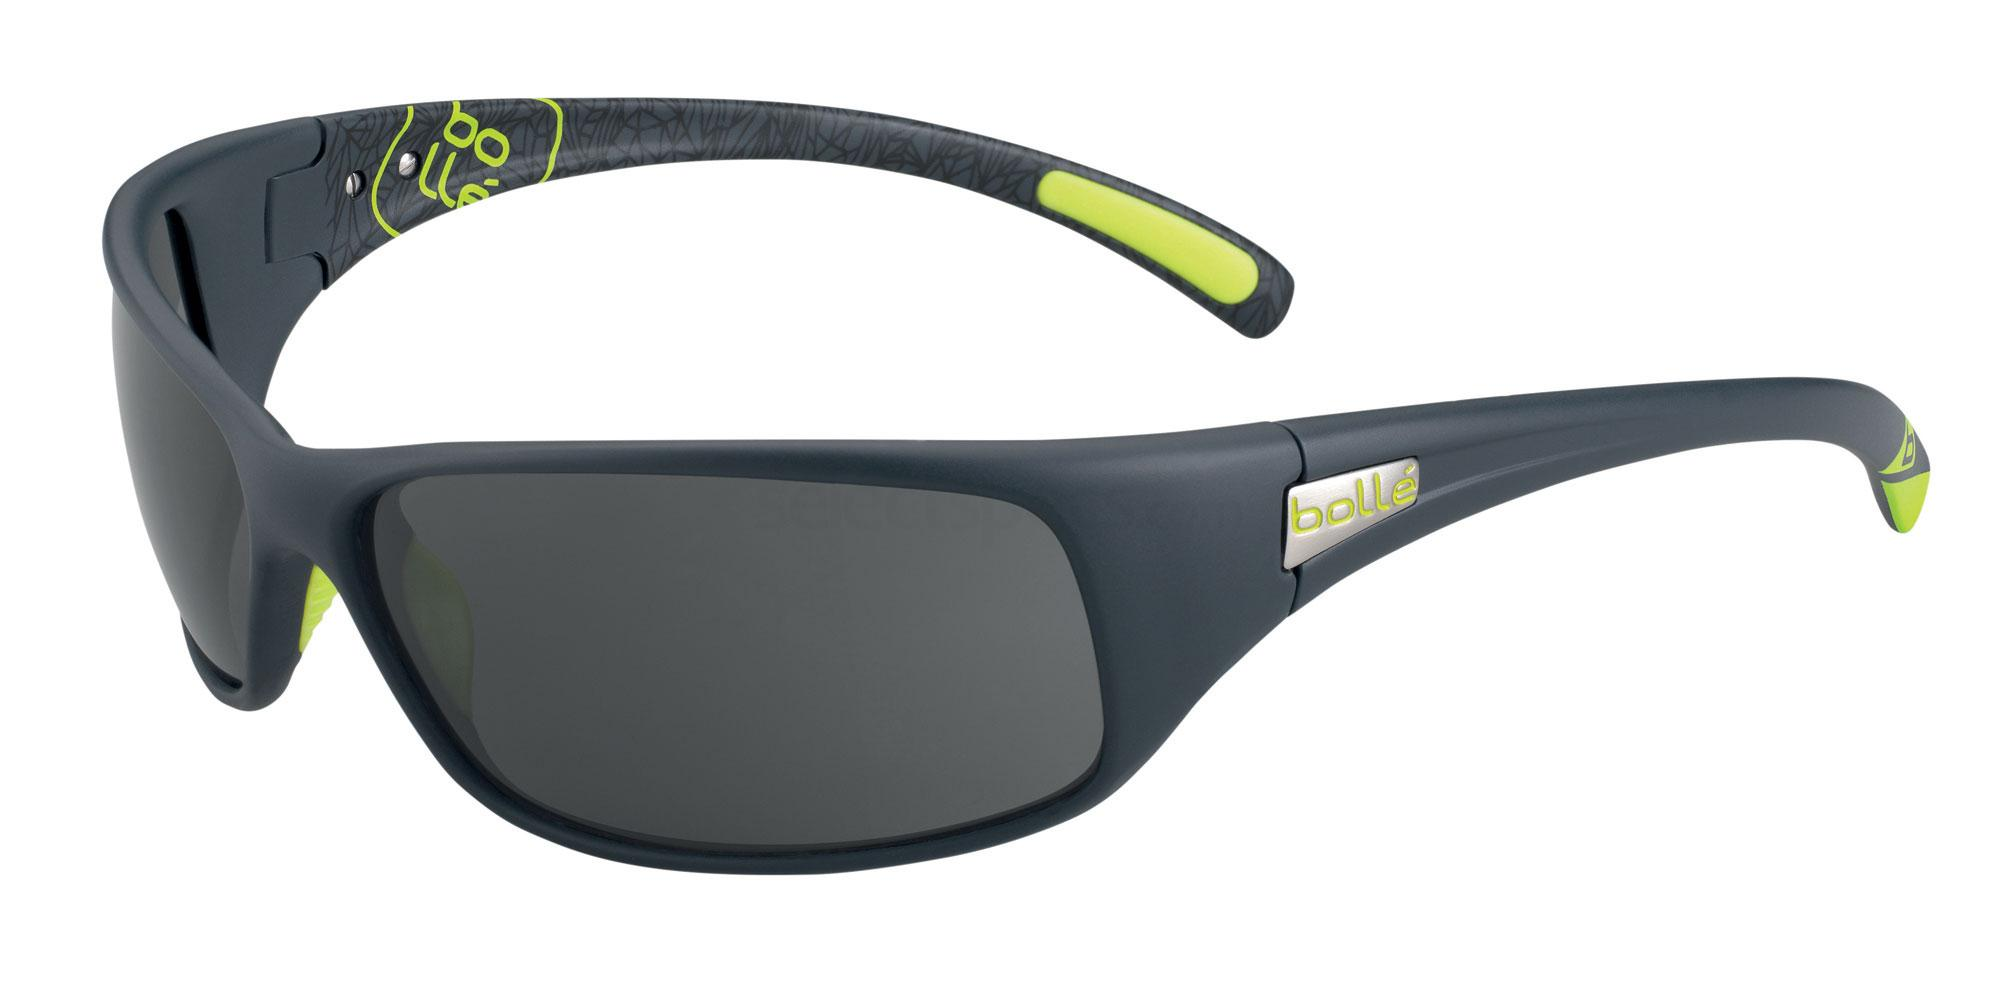 12202 Recoil Sunglasses, Bolle